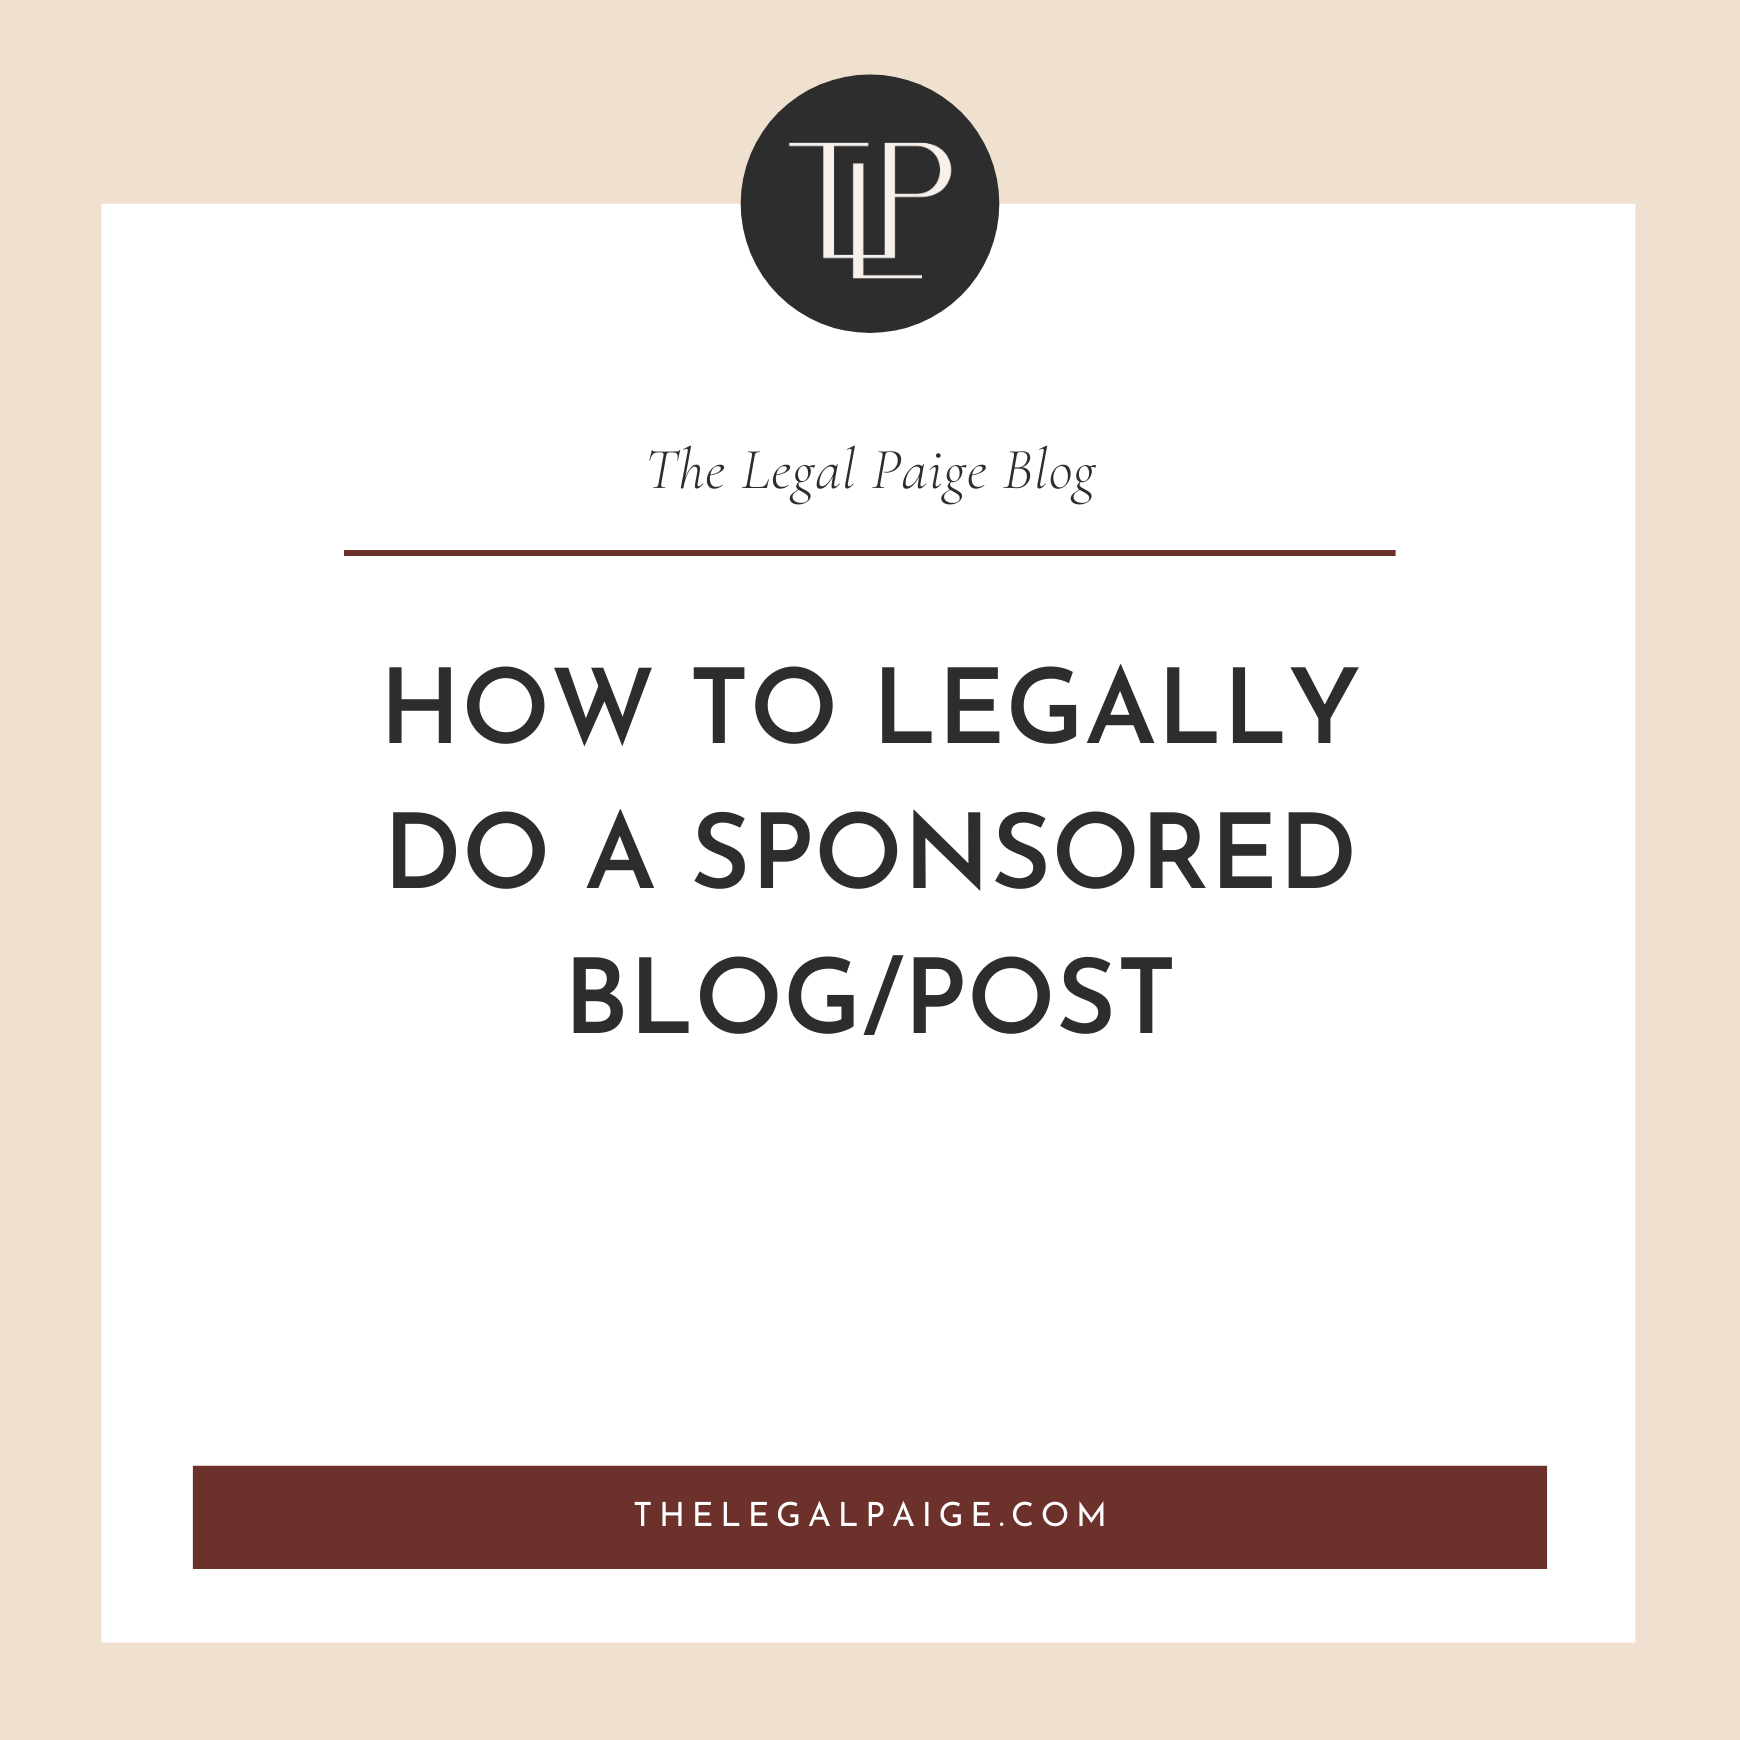 How to Legally Do a Sponsored Blog/Post